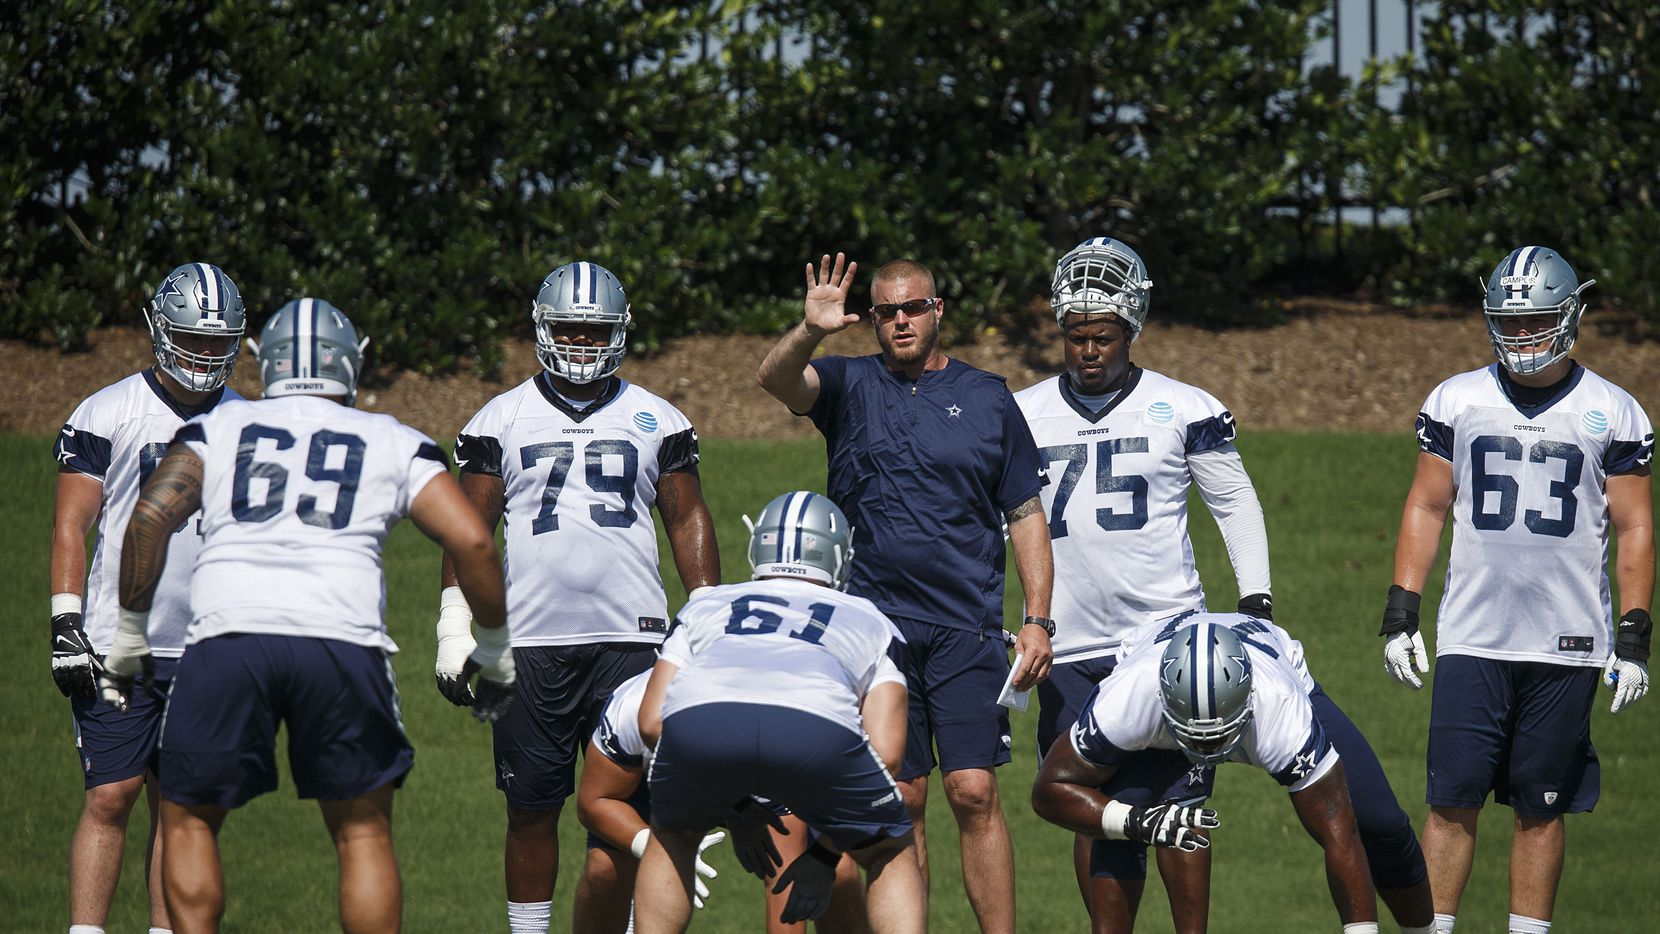 Dallas Cowboys assistant offensive line coach Marc Colombo works with lineman during the third and final round of Cowboys OTA practices at The Star on Wednesday, June 6, 2018, in Frisco.